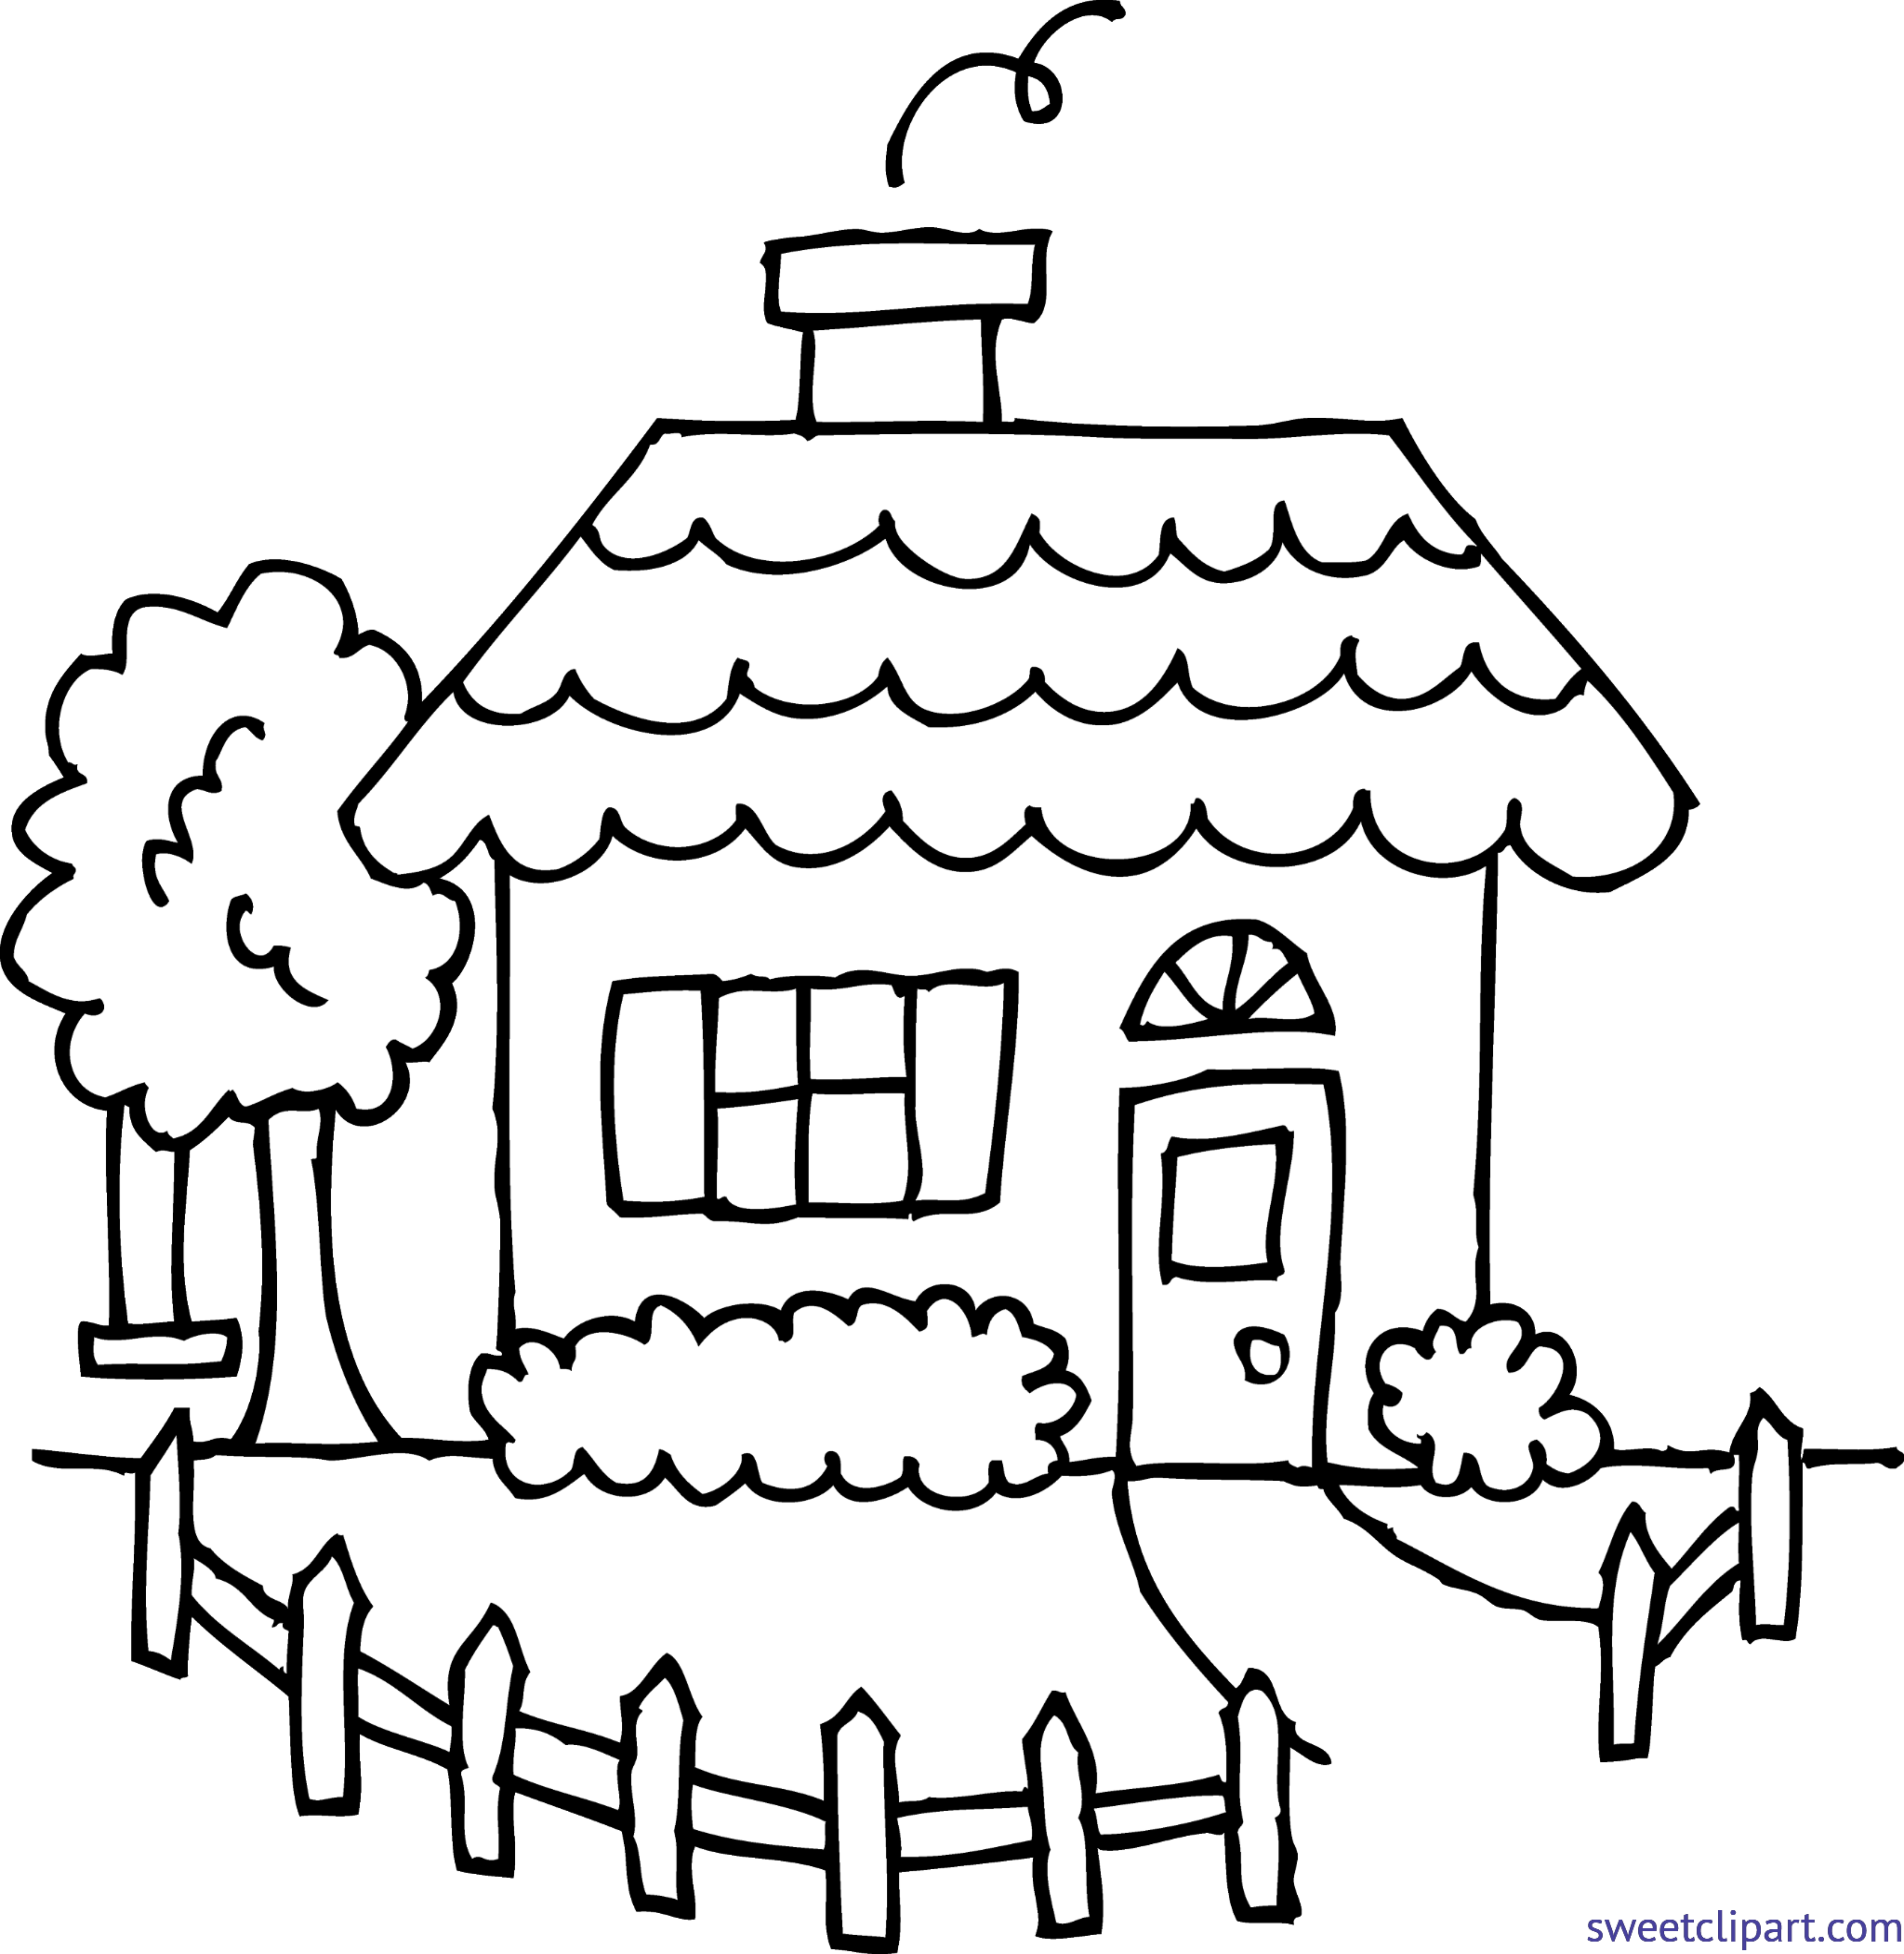 Drawing farmhouse farm clipart. Png freeuse library